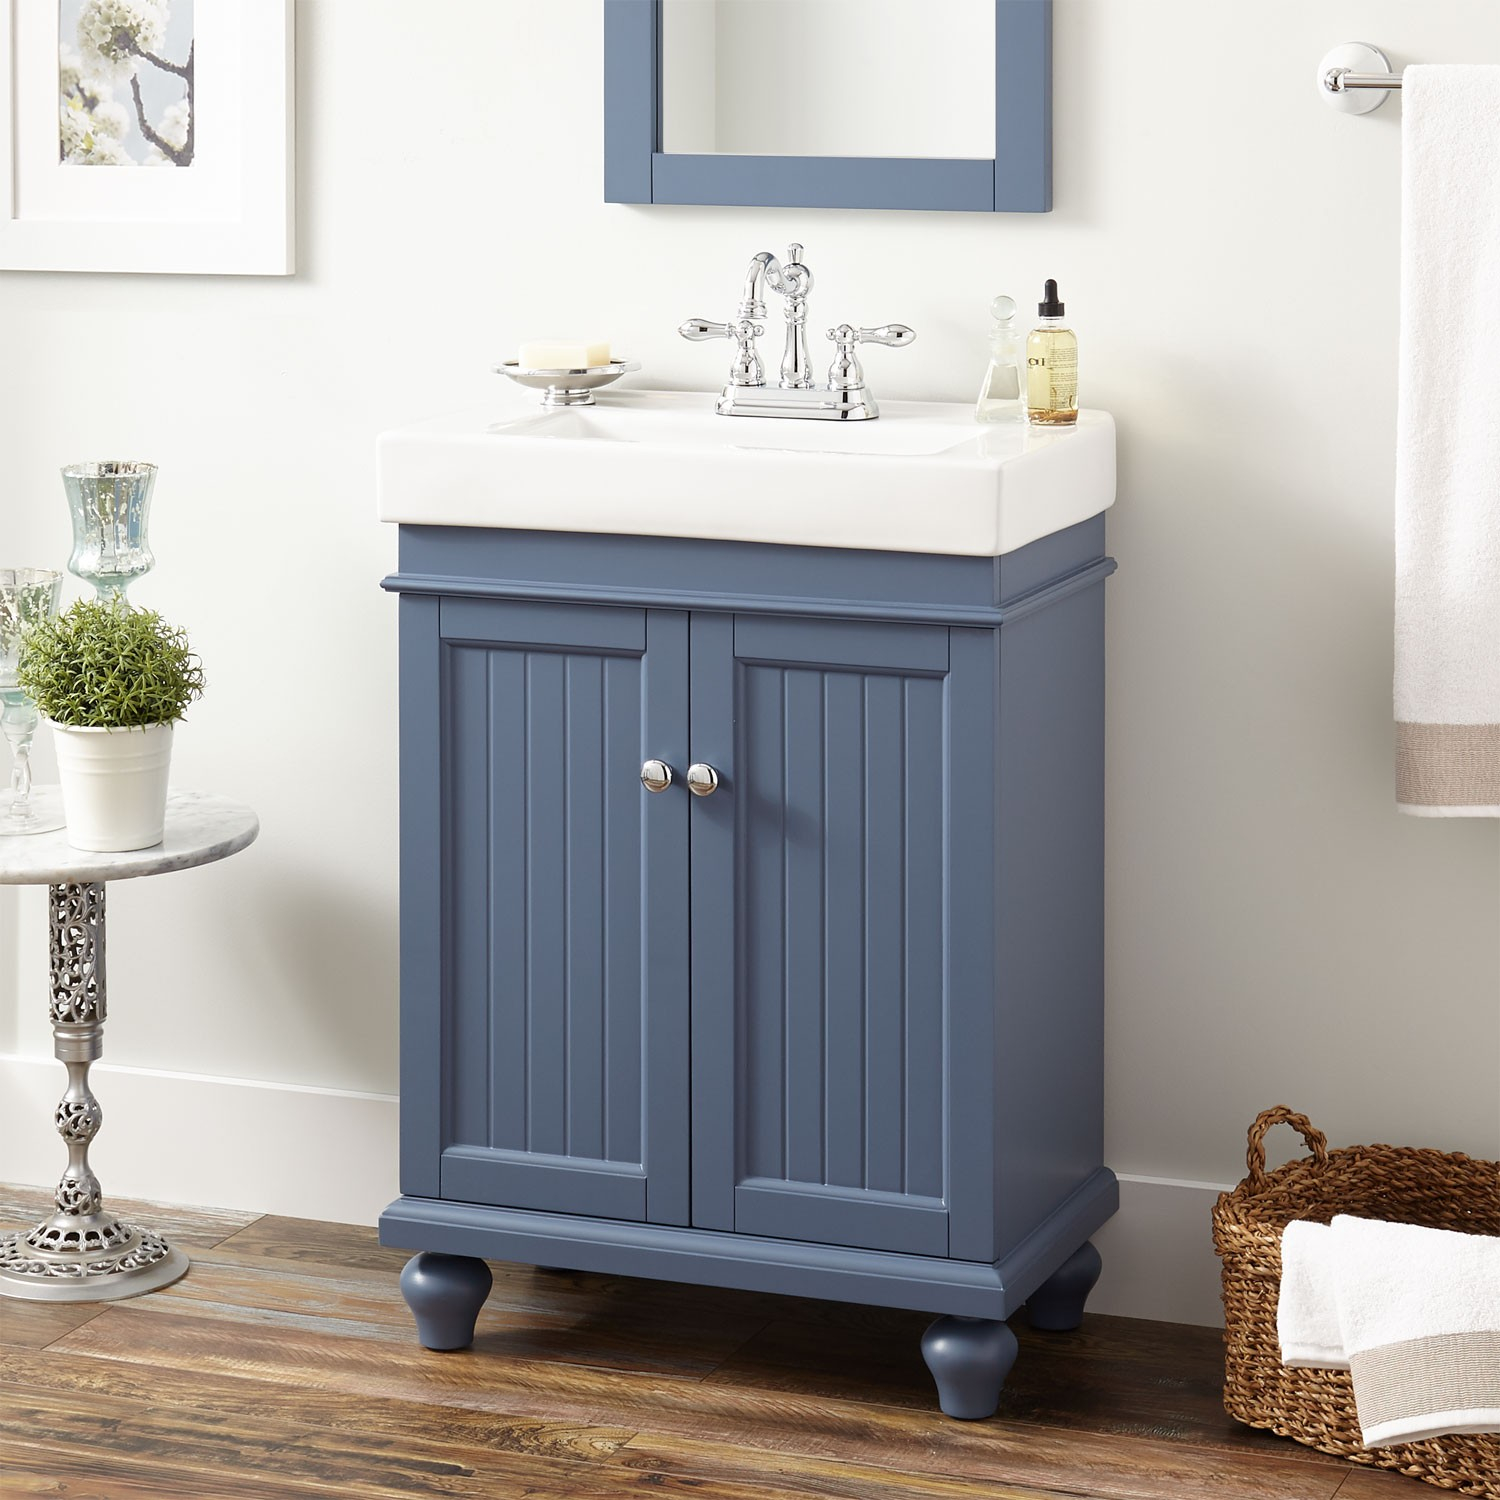 "Elite 24"" Lander Vanity Cabinet Blue Bathroom - Avaz International for High Quality Blue Bathroom Vanity Cabinet"